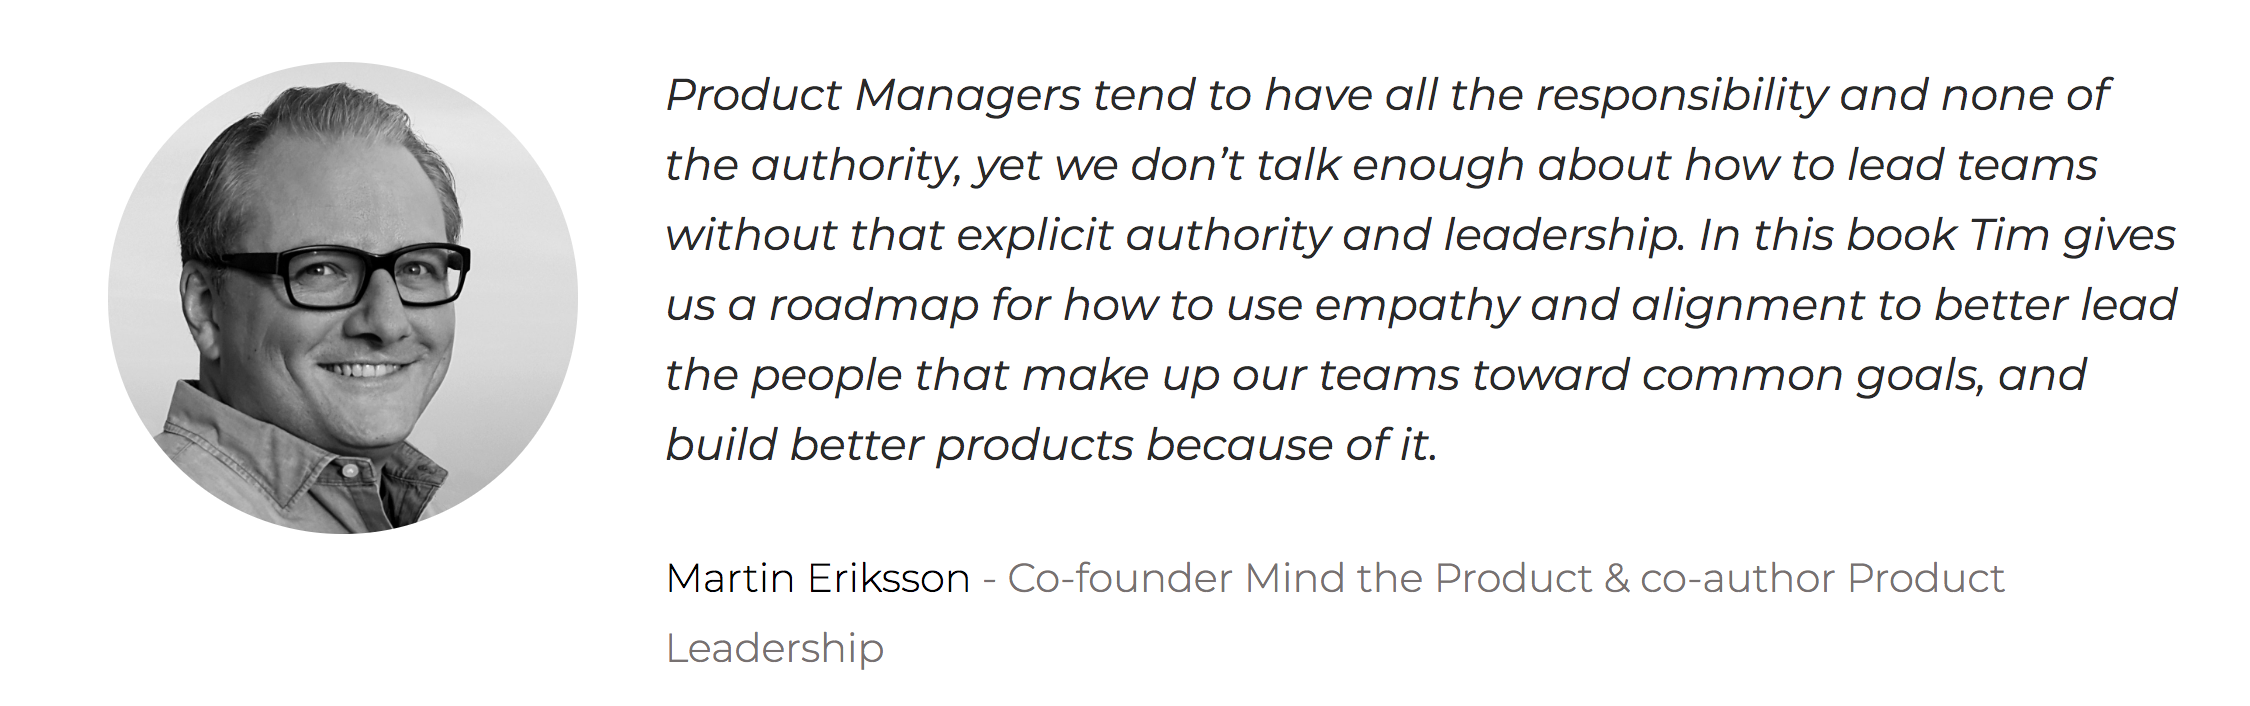 Martin Eriksson on Lateral Leadership by Tim Herbig